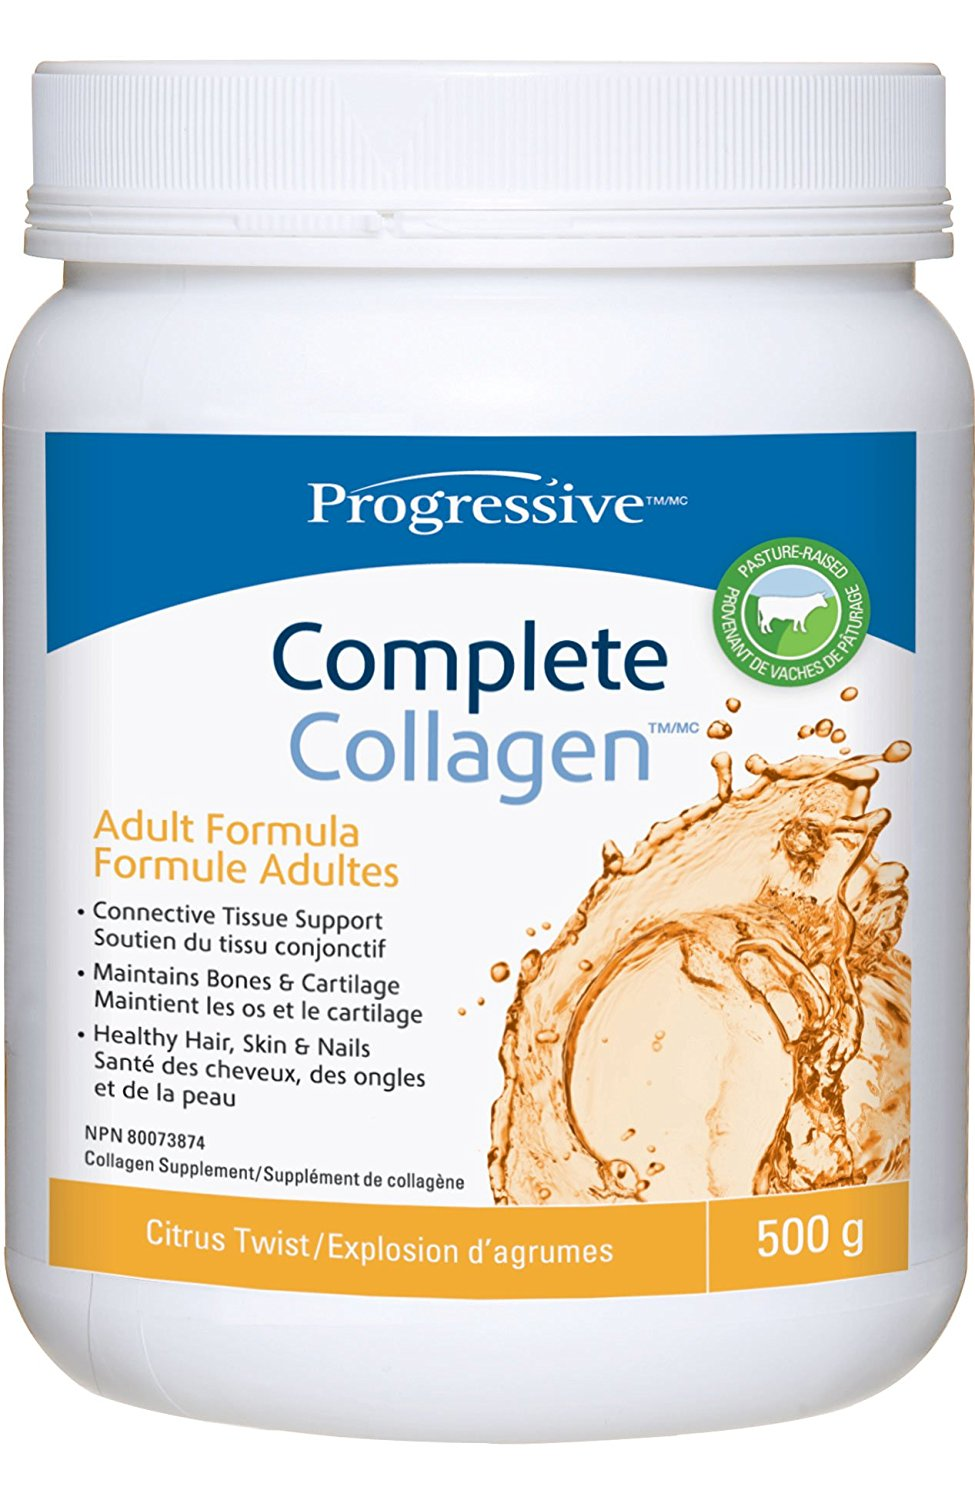 Progressive Complete Collagen Citrus Twist (500g)